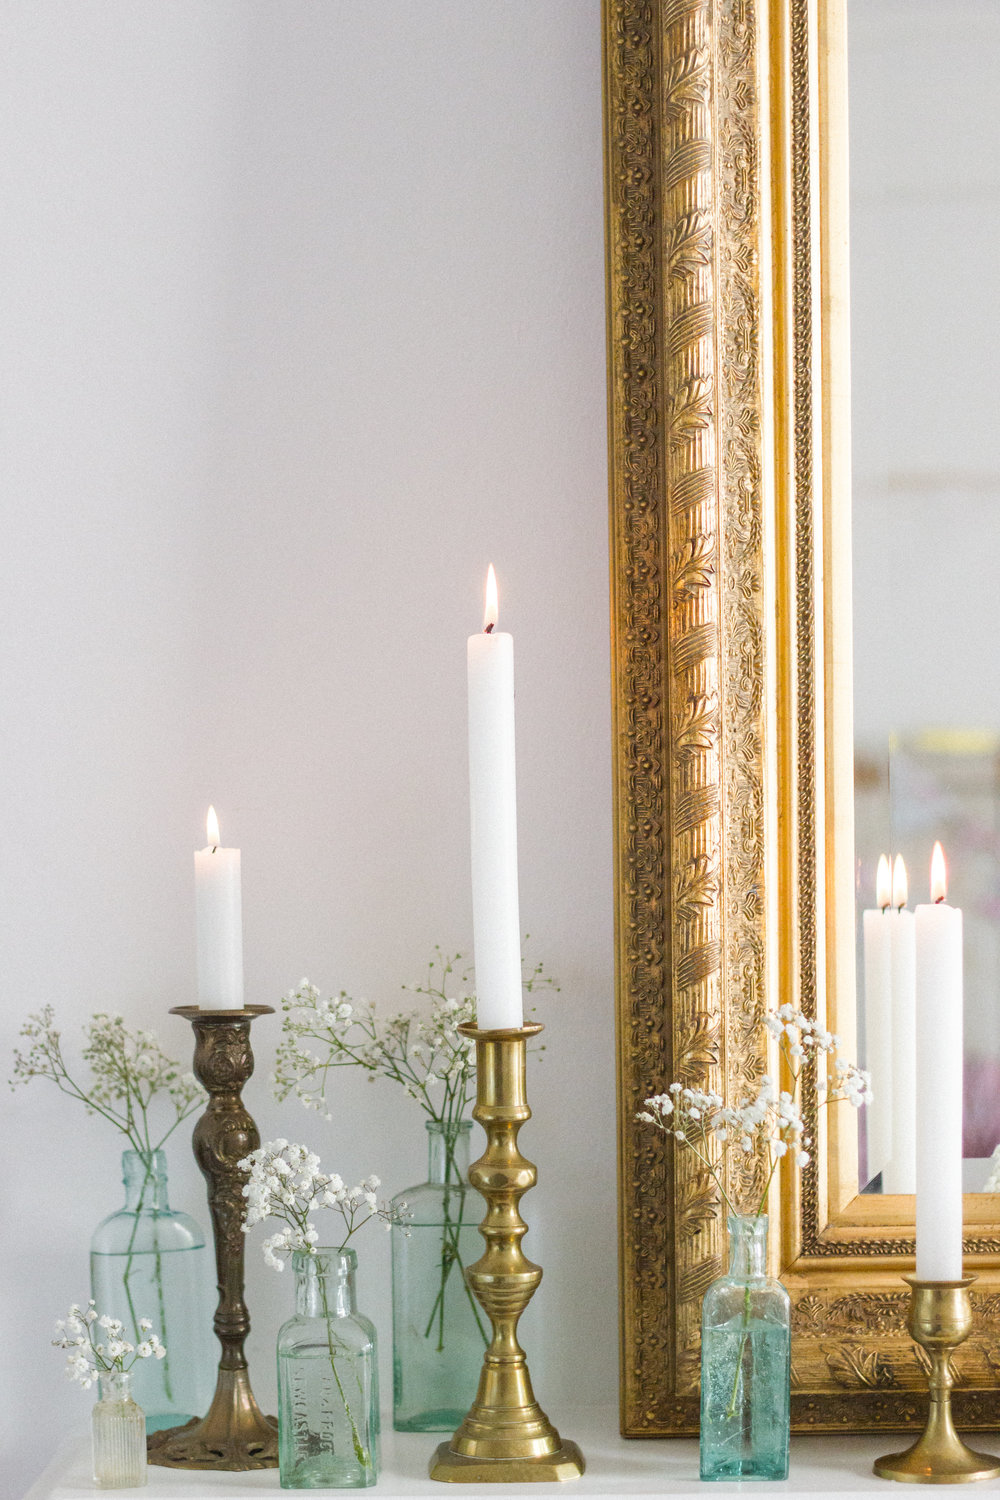 Create a stunning fireplace mantle with candles & bottles at alternate heights in-keeping with your style.